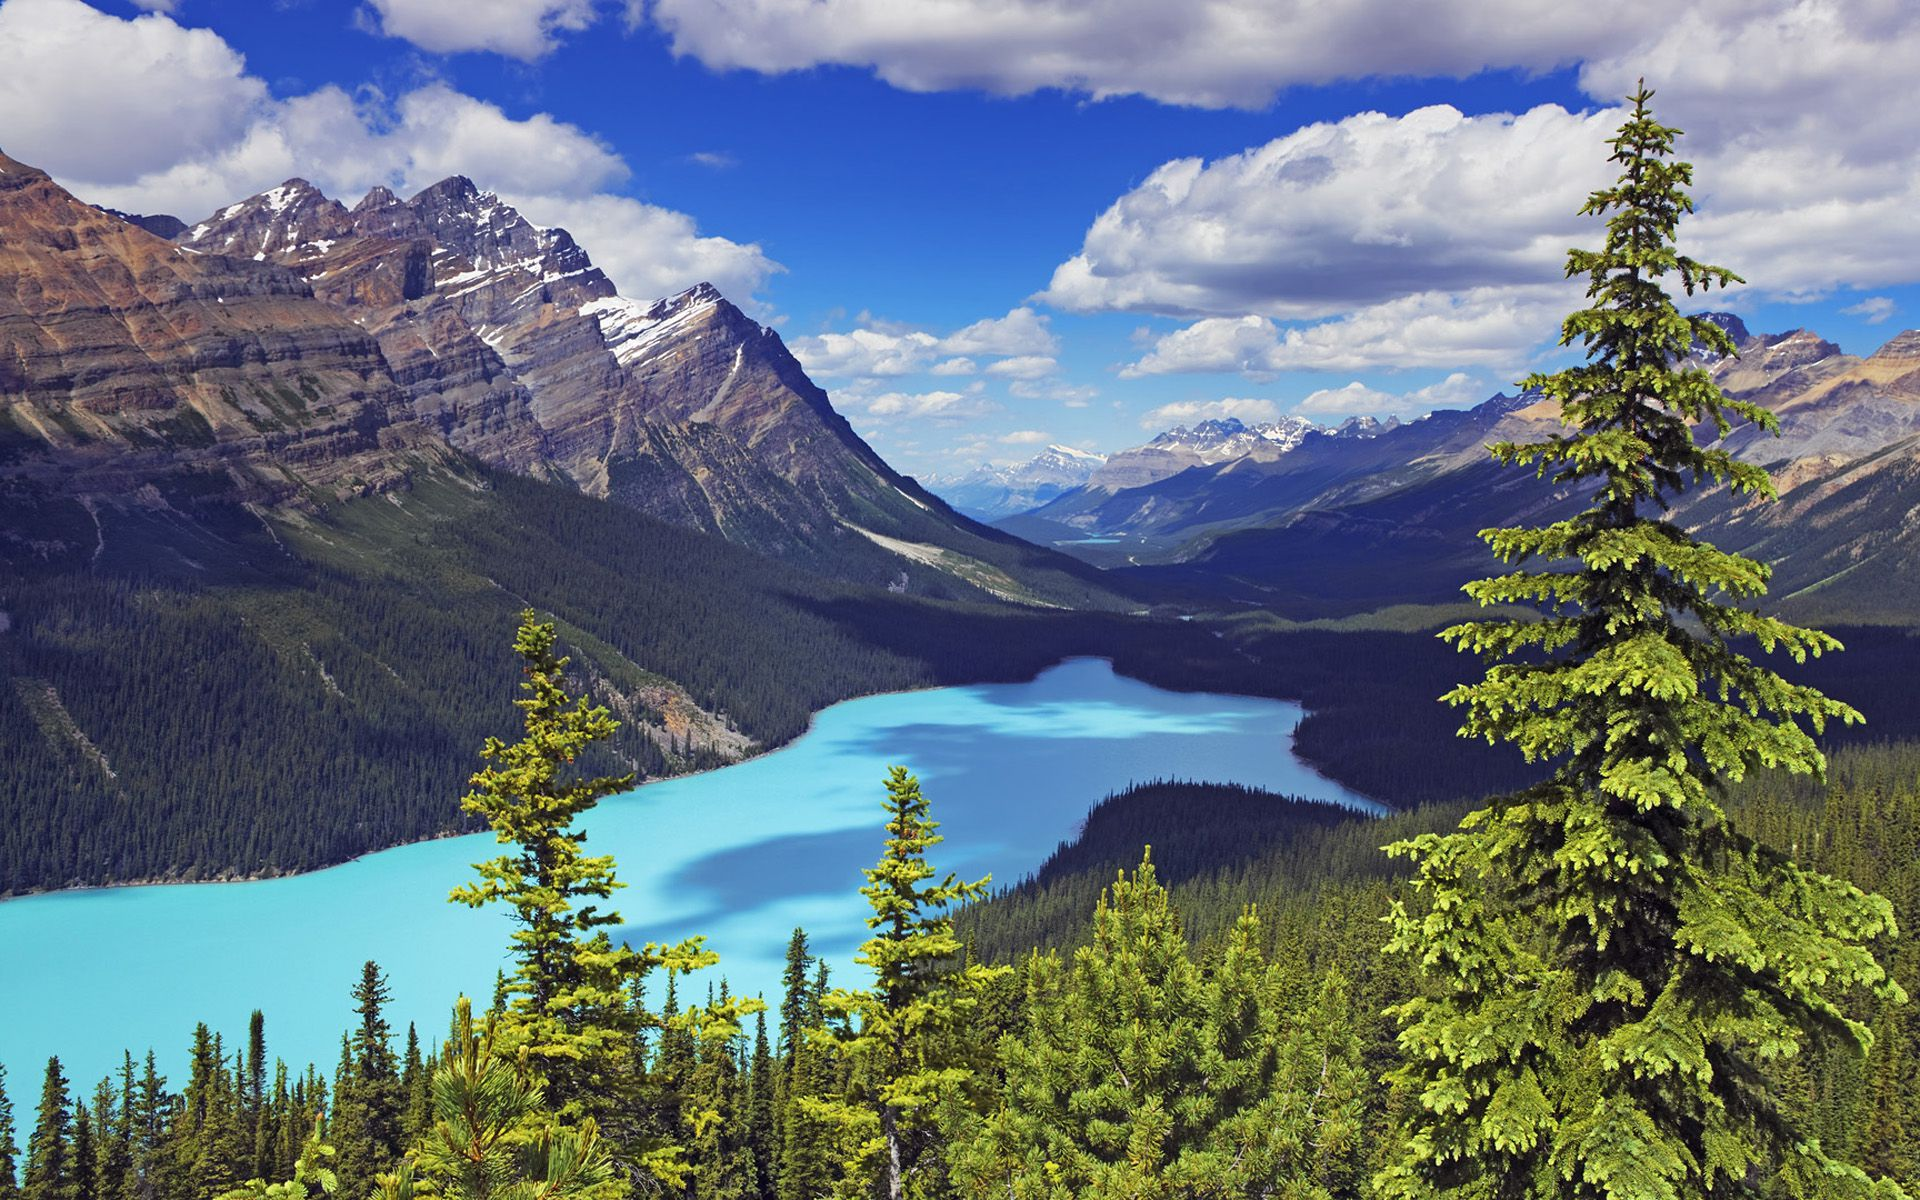 Banff National Park Wallpaper Related Nature pictures 1920x1200